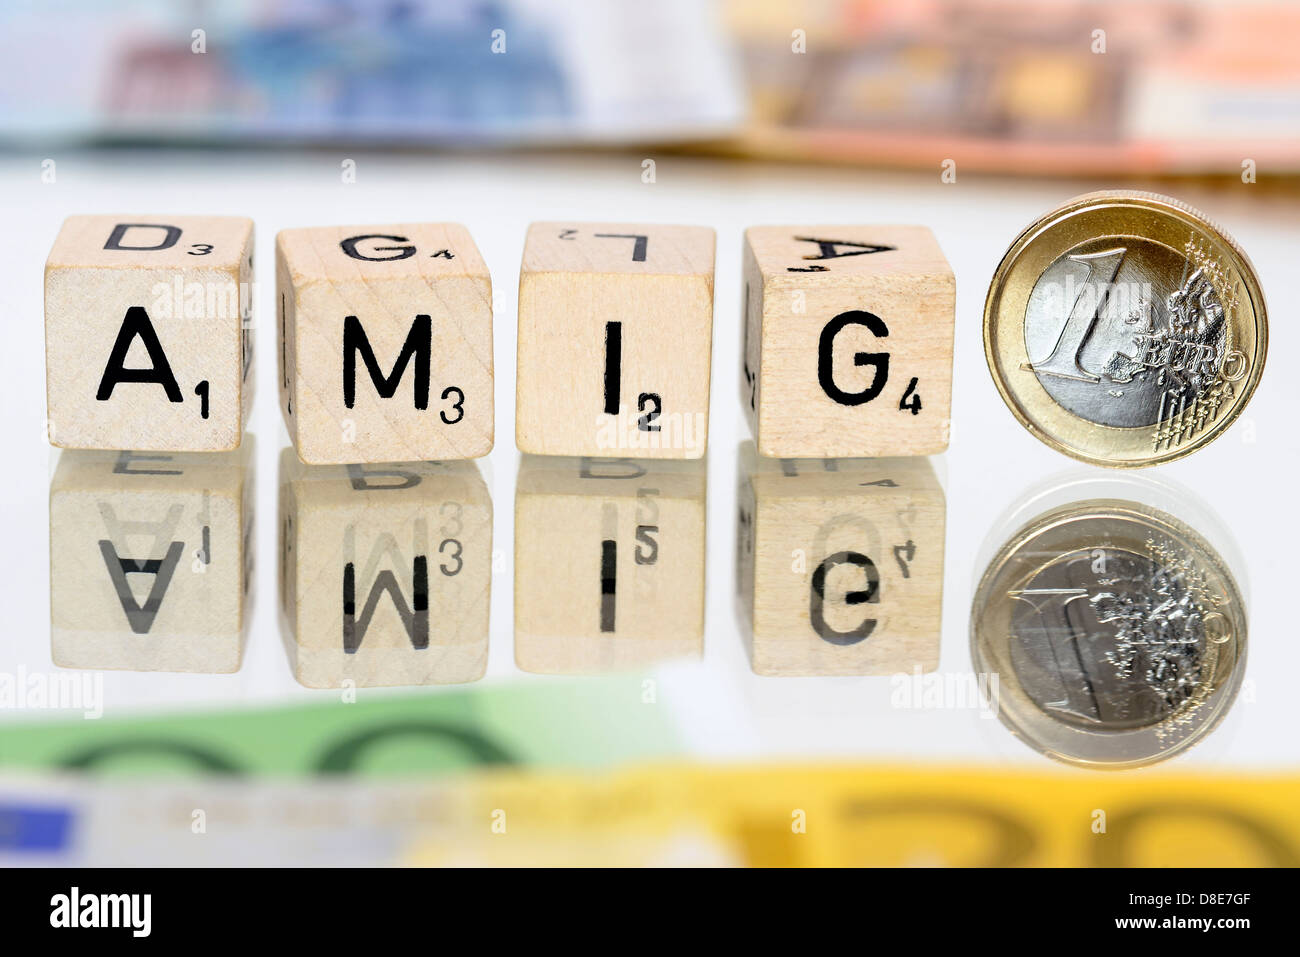 The word Amigo with letters and one-euro coin, Amigo affair - Stock Image